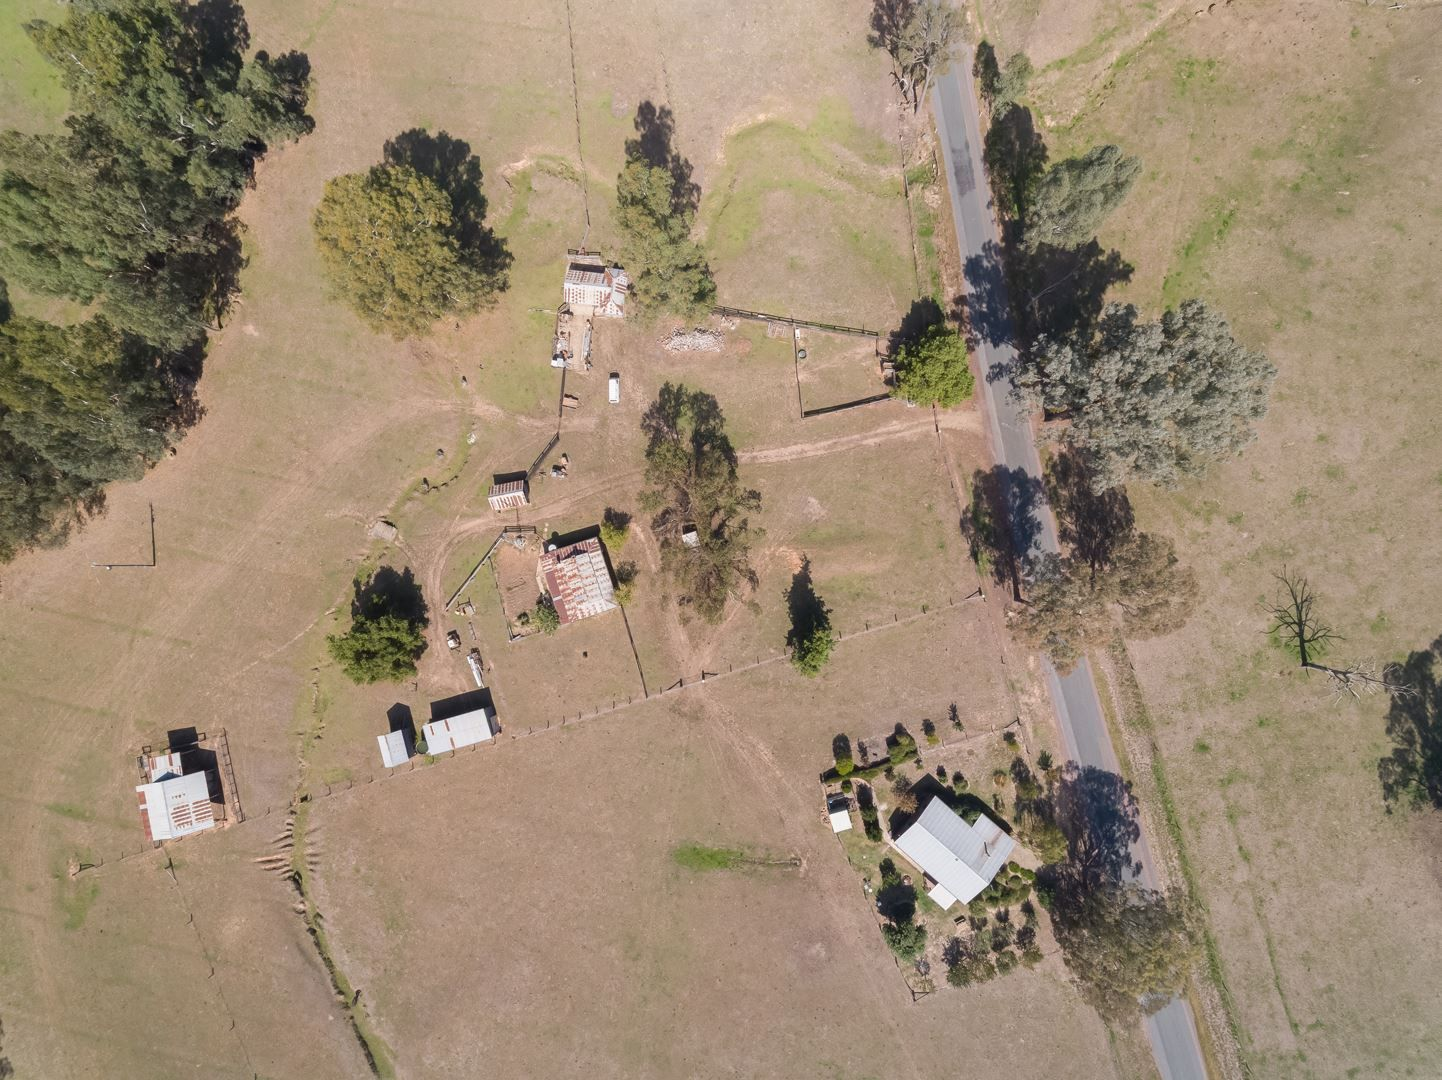 717 Moyhu - Meadow Creek Road, Meadow Creek VIC 3678, Image 2